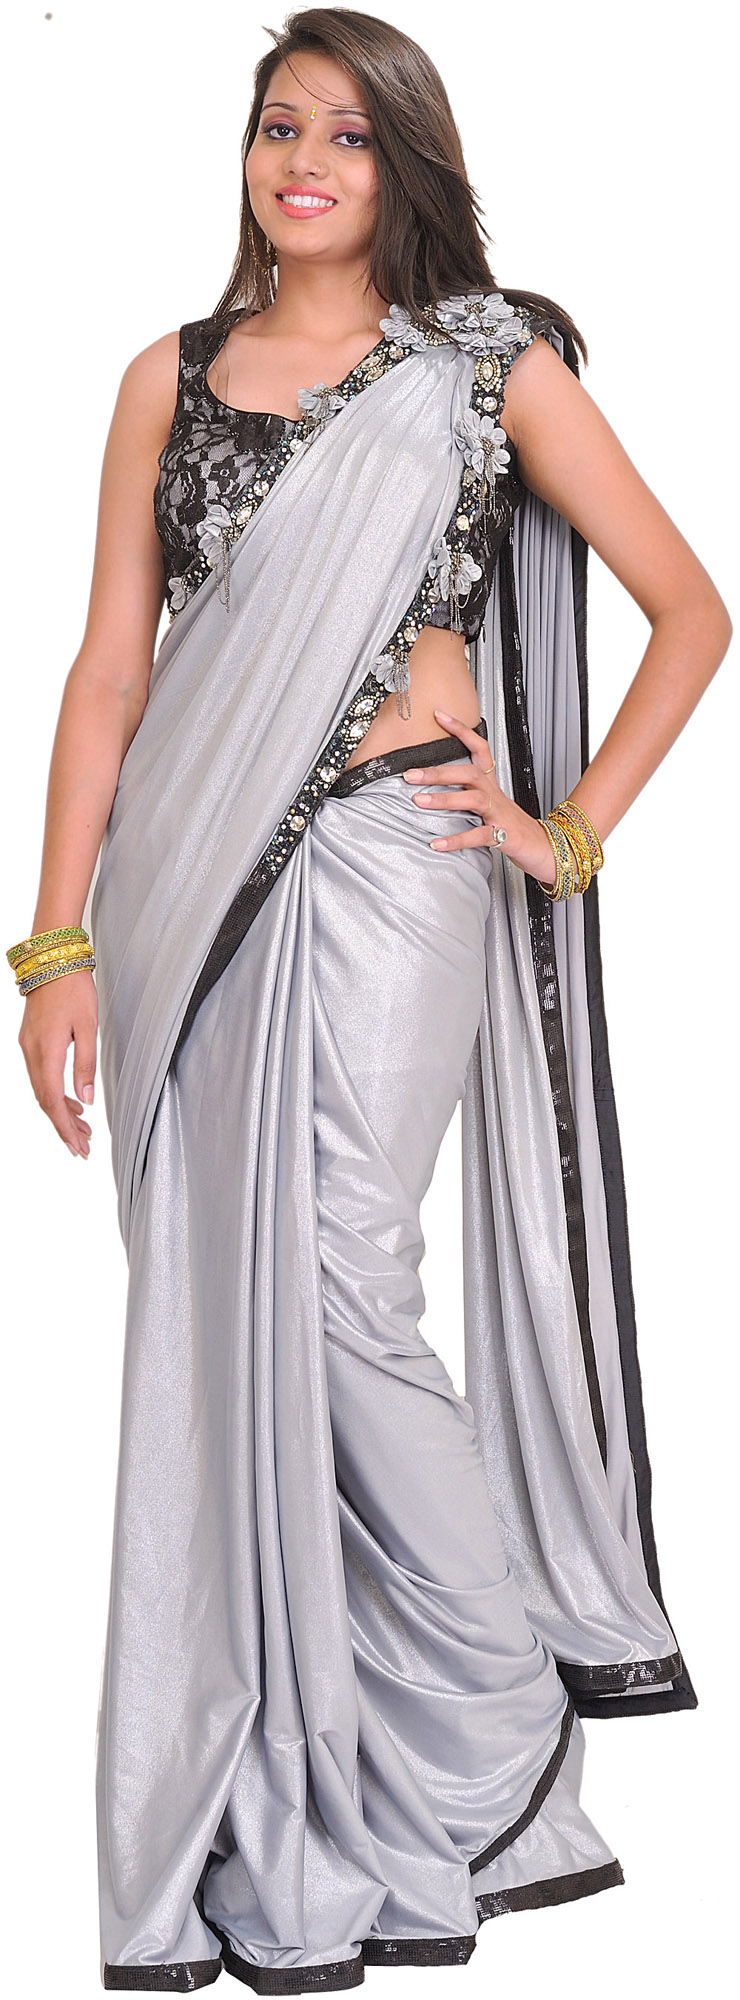 Silver and Black Wedding Sari with Sequined Patch Border ...